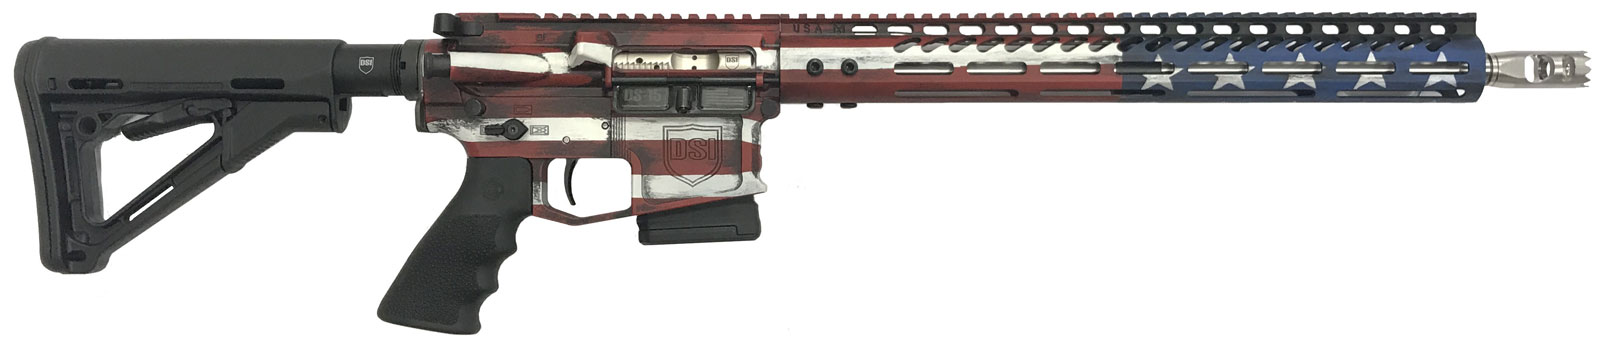 "DS-15 Signature Series ""Freedom Flag"" 5.56 Fixed Mag Rifle"